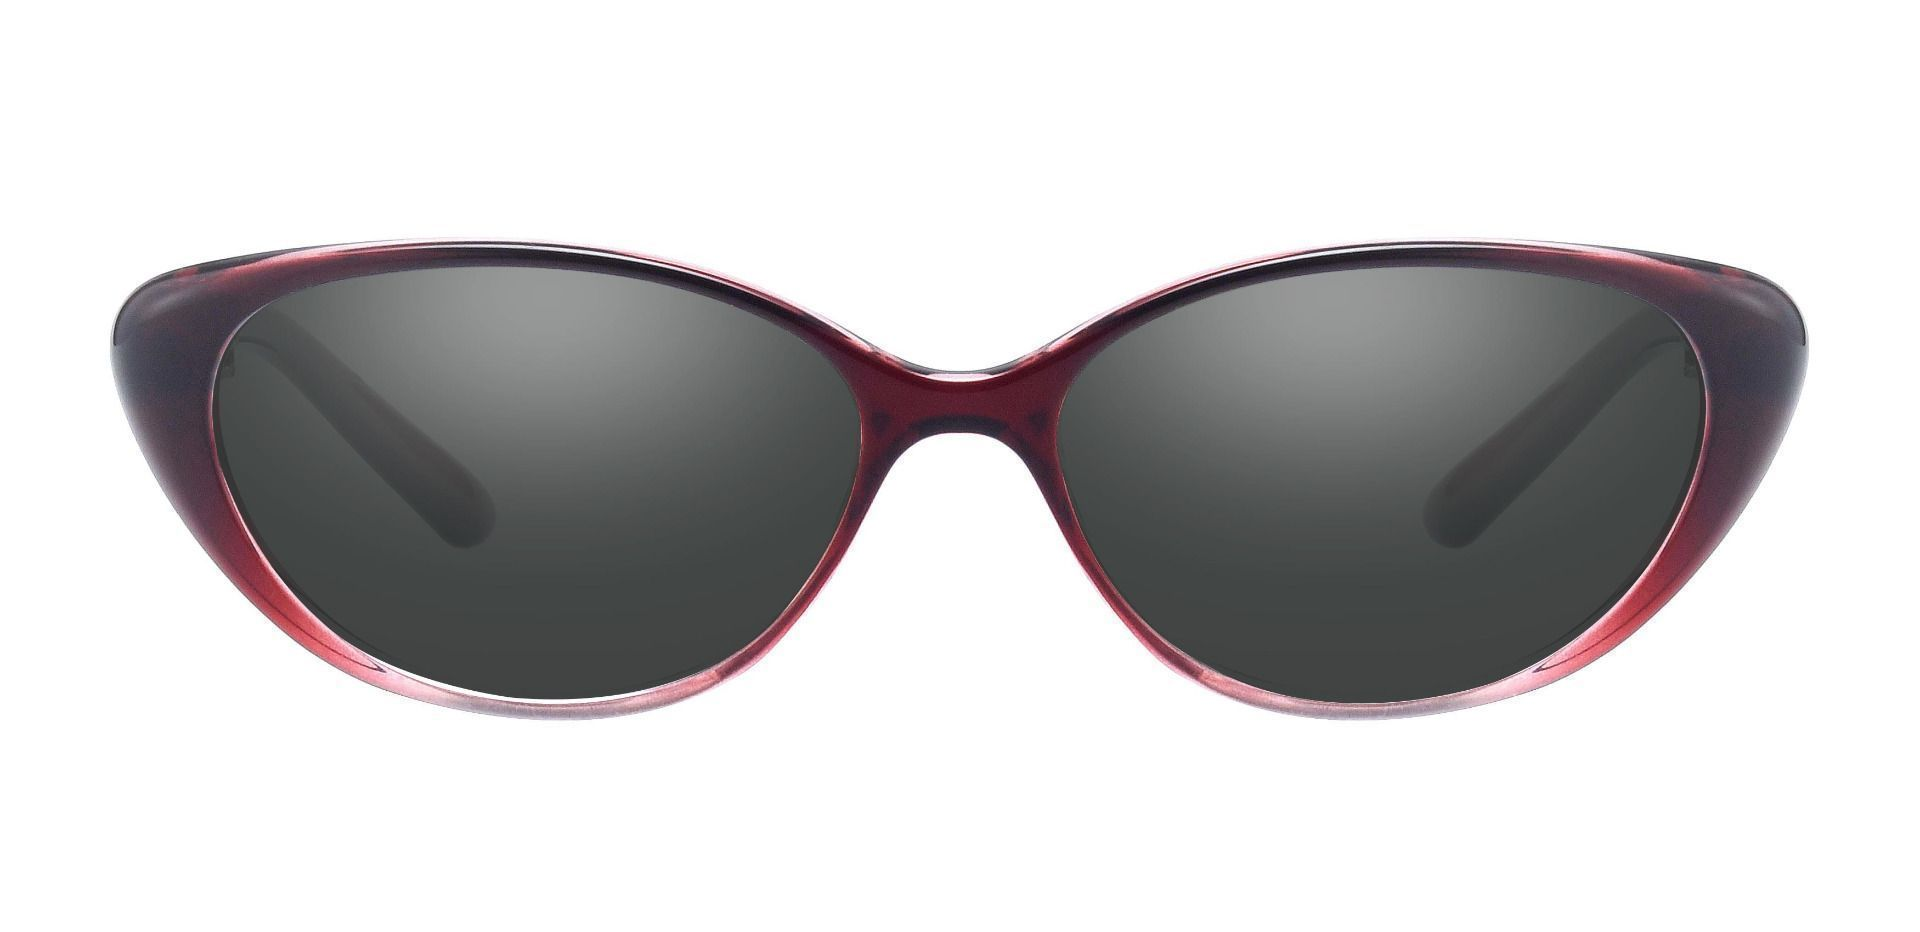 Josie Cat Eye Single Vision Sunglasses - Red Frame With Gray Lenses